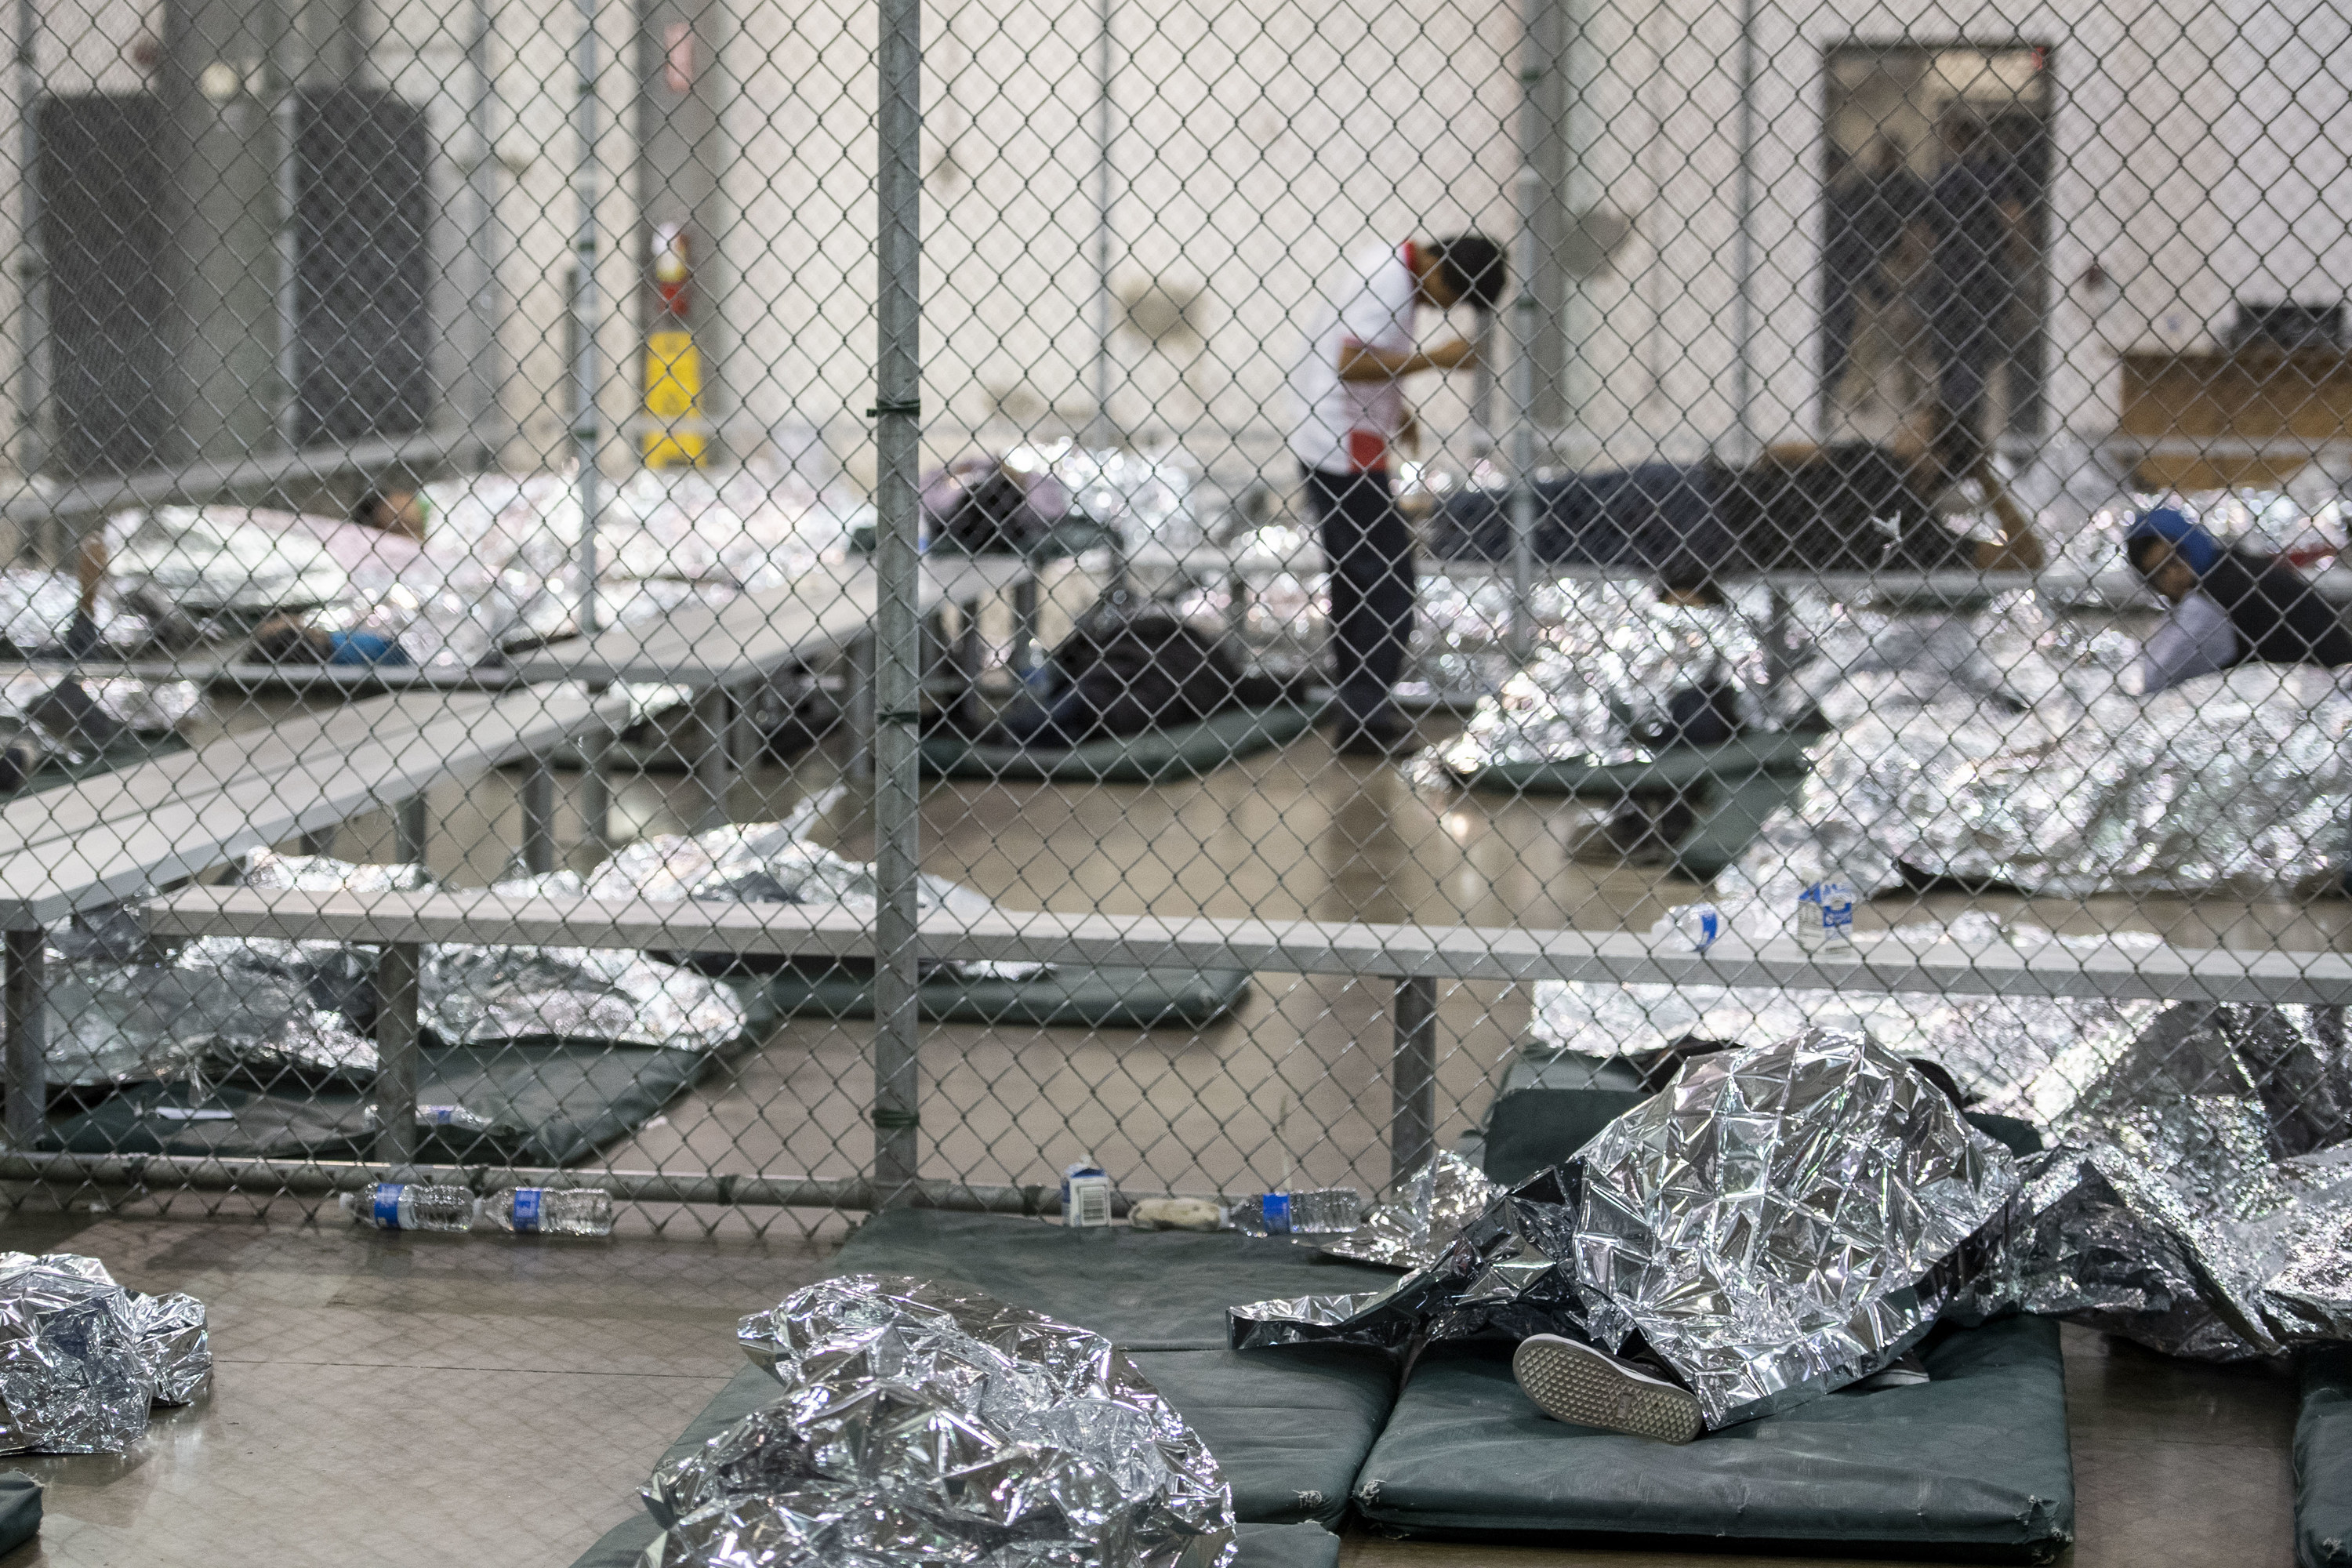 The children lie on padded mats on the floor, in groups separated by wire fencing.